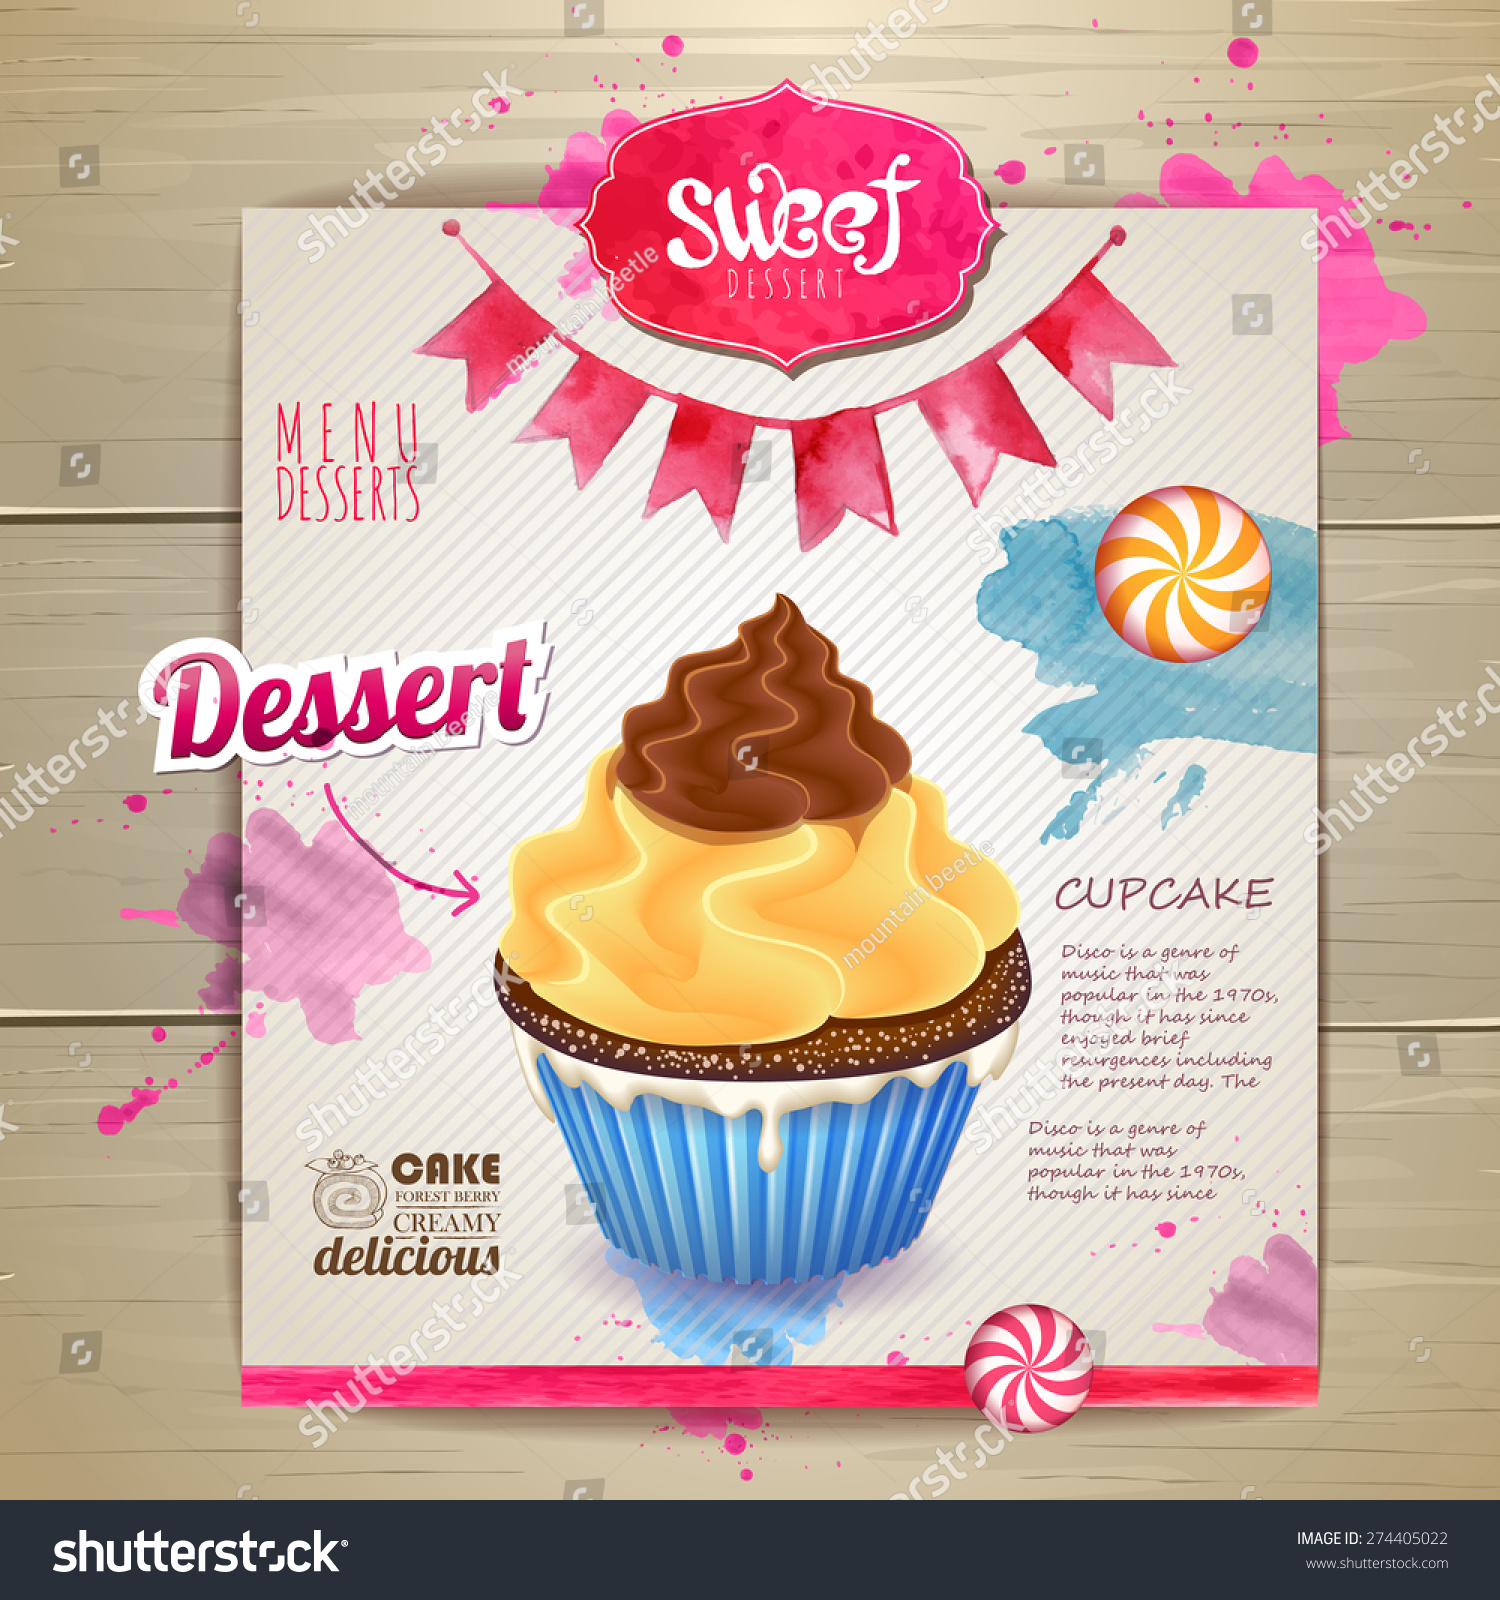 Vintage Cupcake Poster Design Stock Vector (Royalty Free